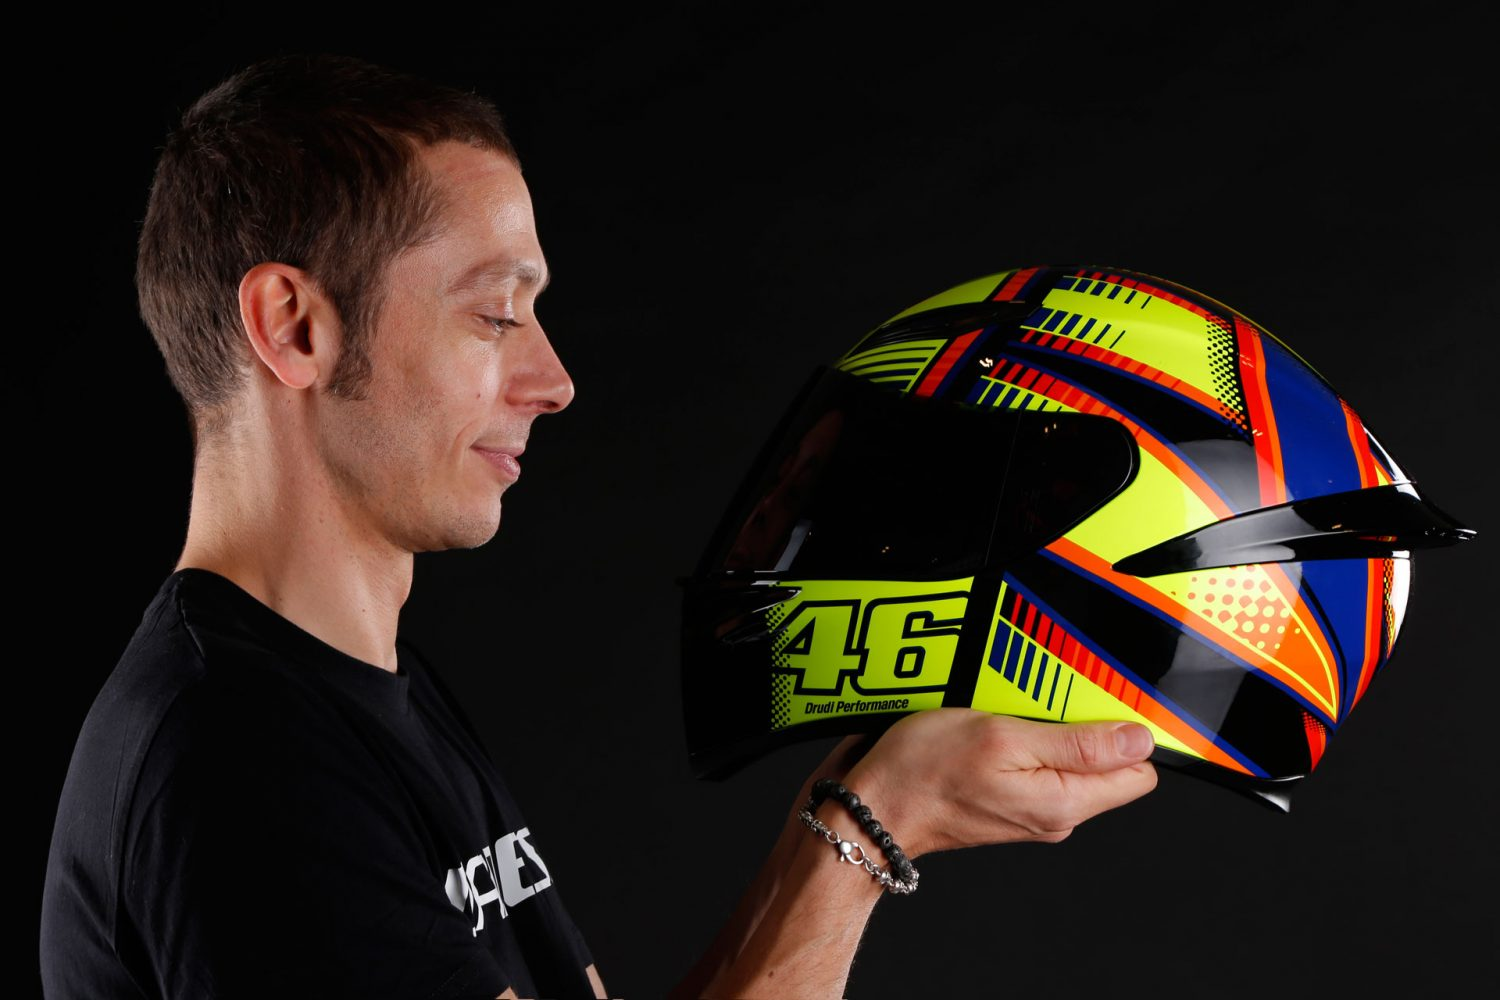 AGV & Link International have announced the new K-1 Helmet